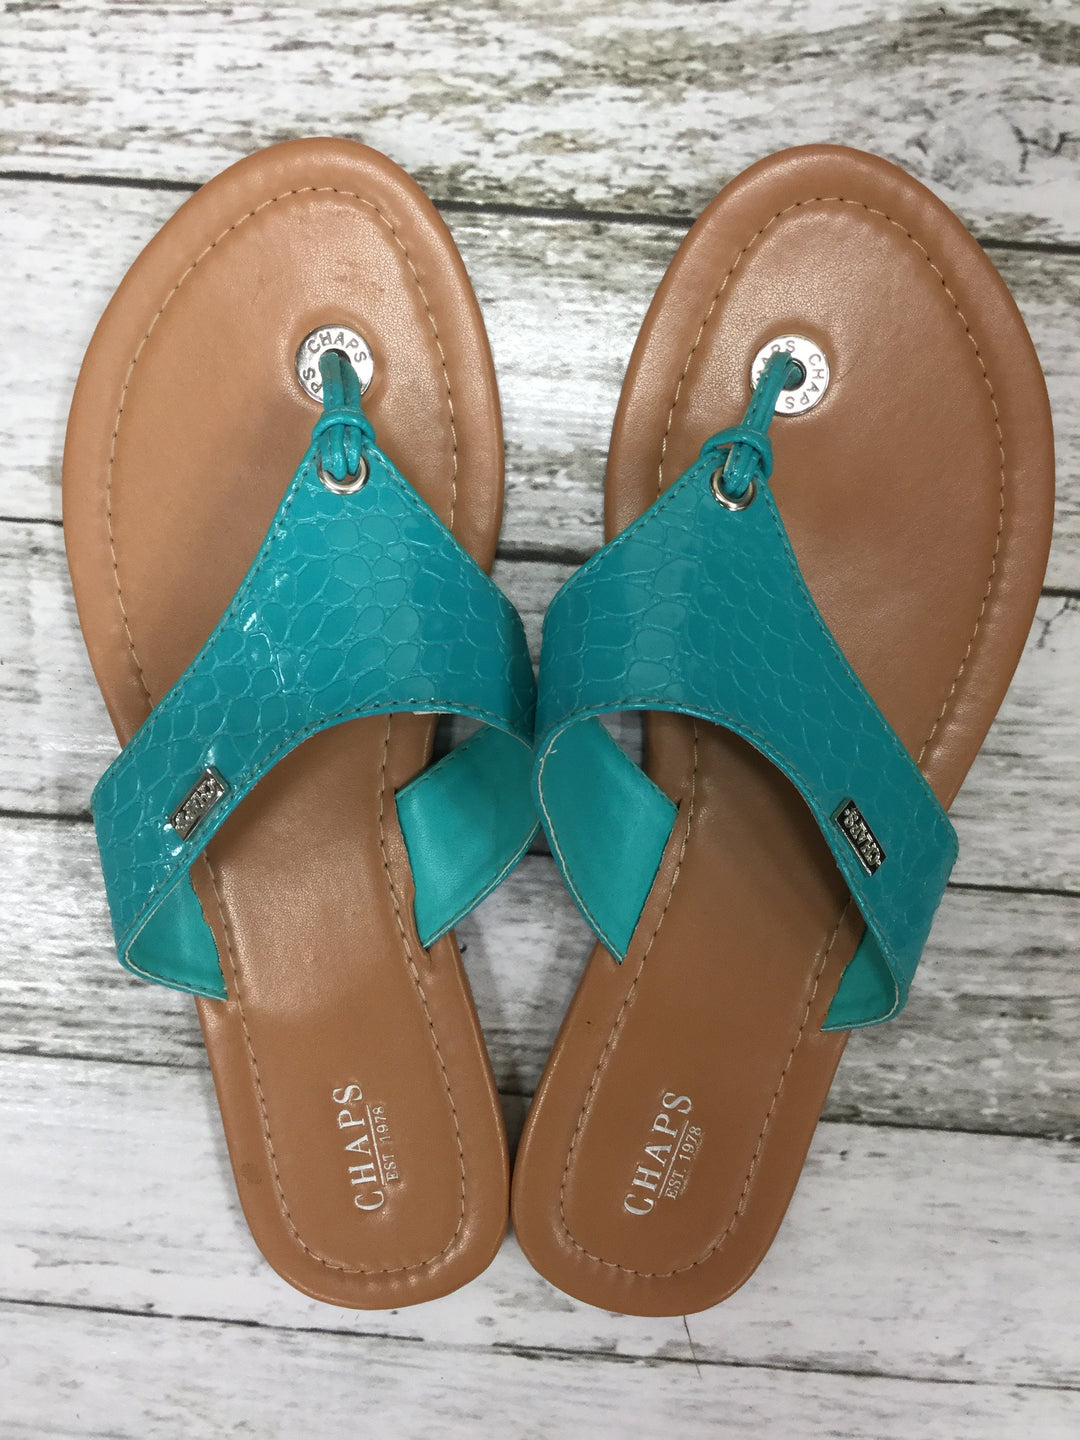 Primary Photo - brand: chaps , style: sandals , color: turquoise , size: 7 , sku: 127-4169-22464